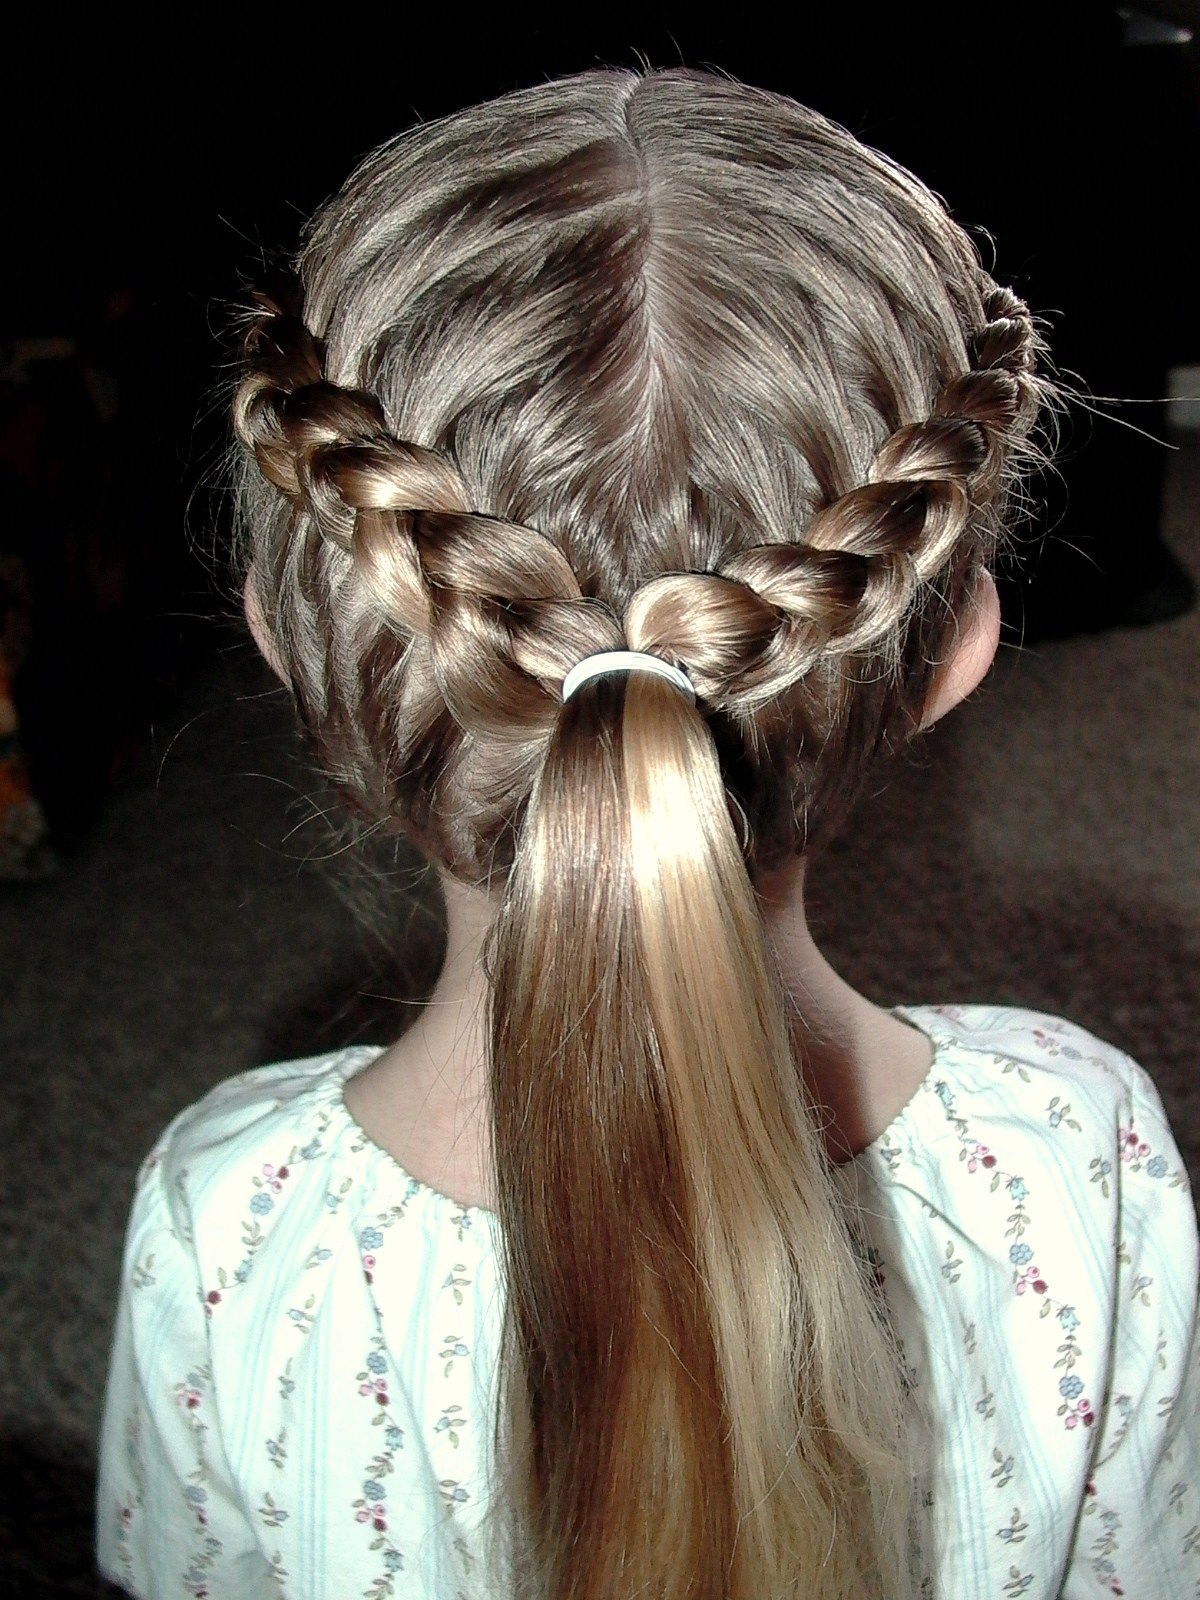 Younger Bridesmaids Flower Girl Hairstyles Little Girl Hairstyles Braided Hairstyles